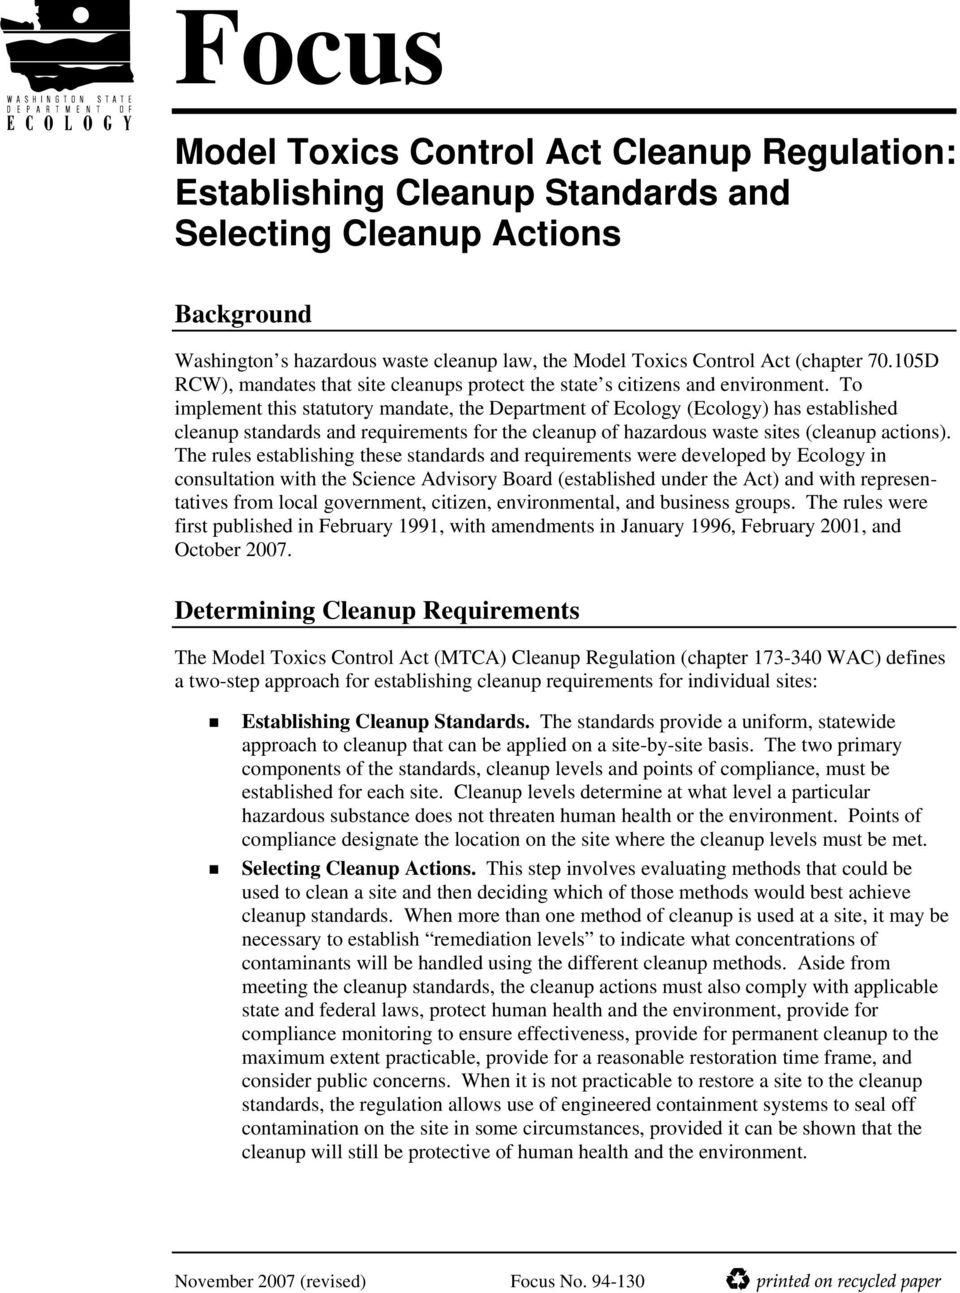 To implement this statutory mandate, the Department of Ecology (Ecology) has established cleanup standards and requirements for the cleanup of hazardous waste sites (cleanup actions).